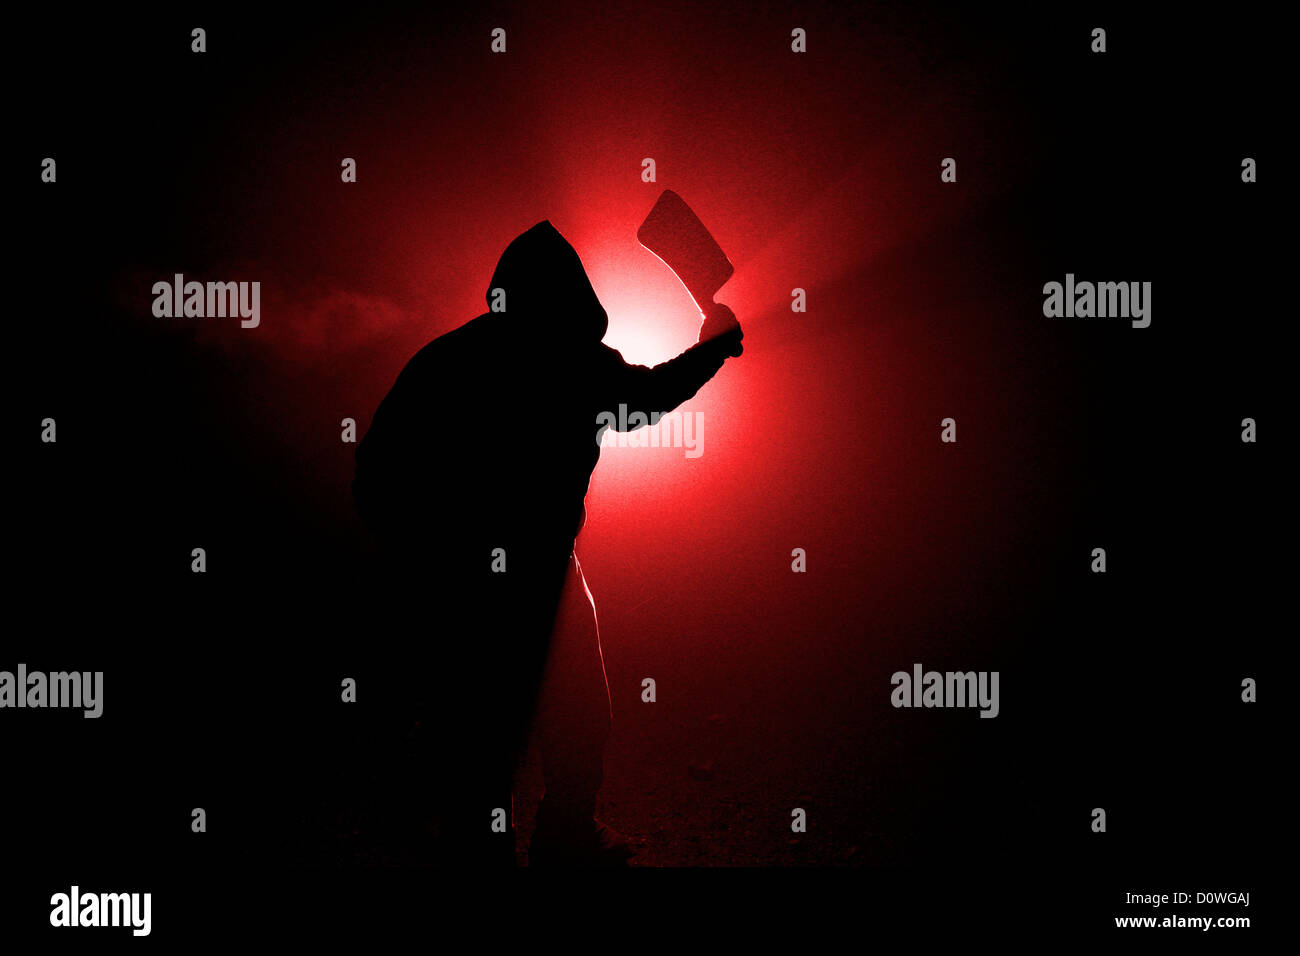 Cleaver Killer: Dark, foggy outdoor silhouette of a man wielding a large cleaver.  Duotone red. - Stock Image